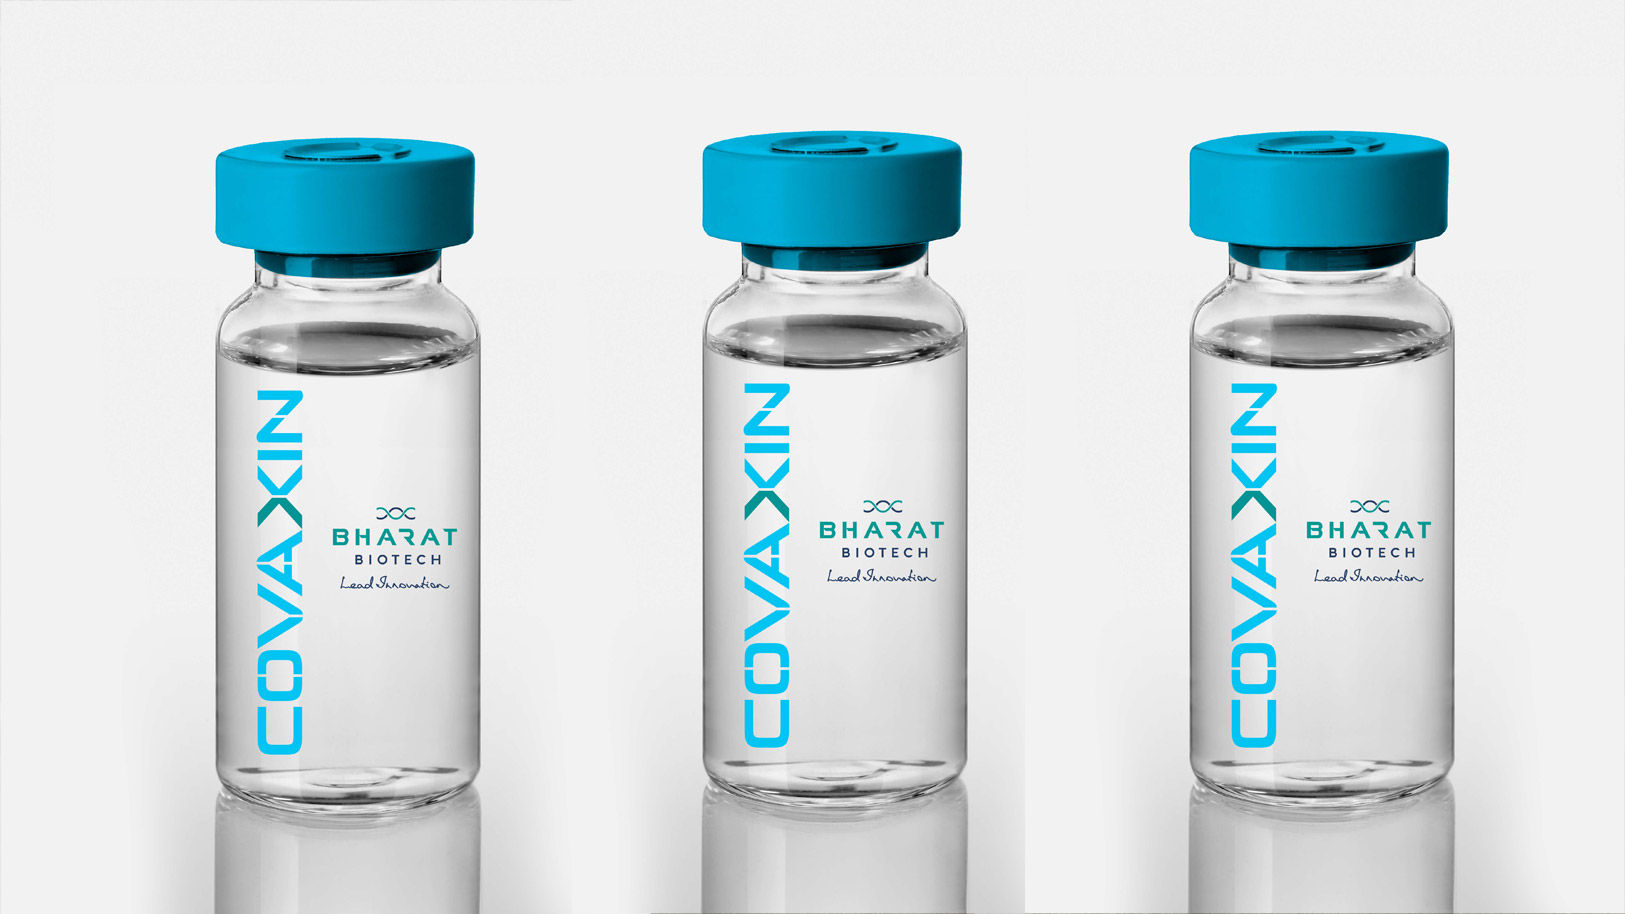 India currently has three vaccines available including Covaxin, Covishield, and Sputnik V